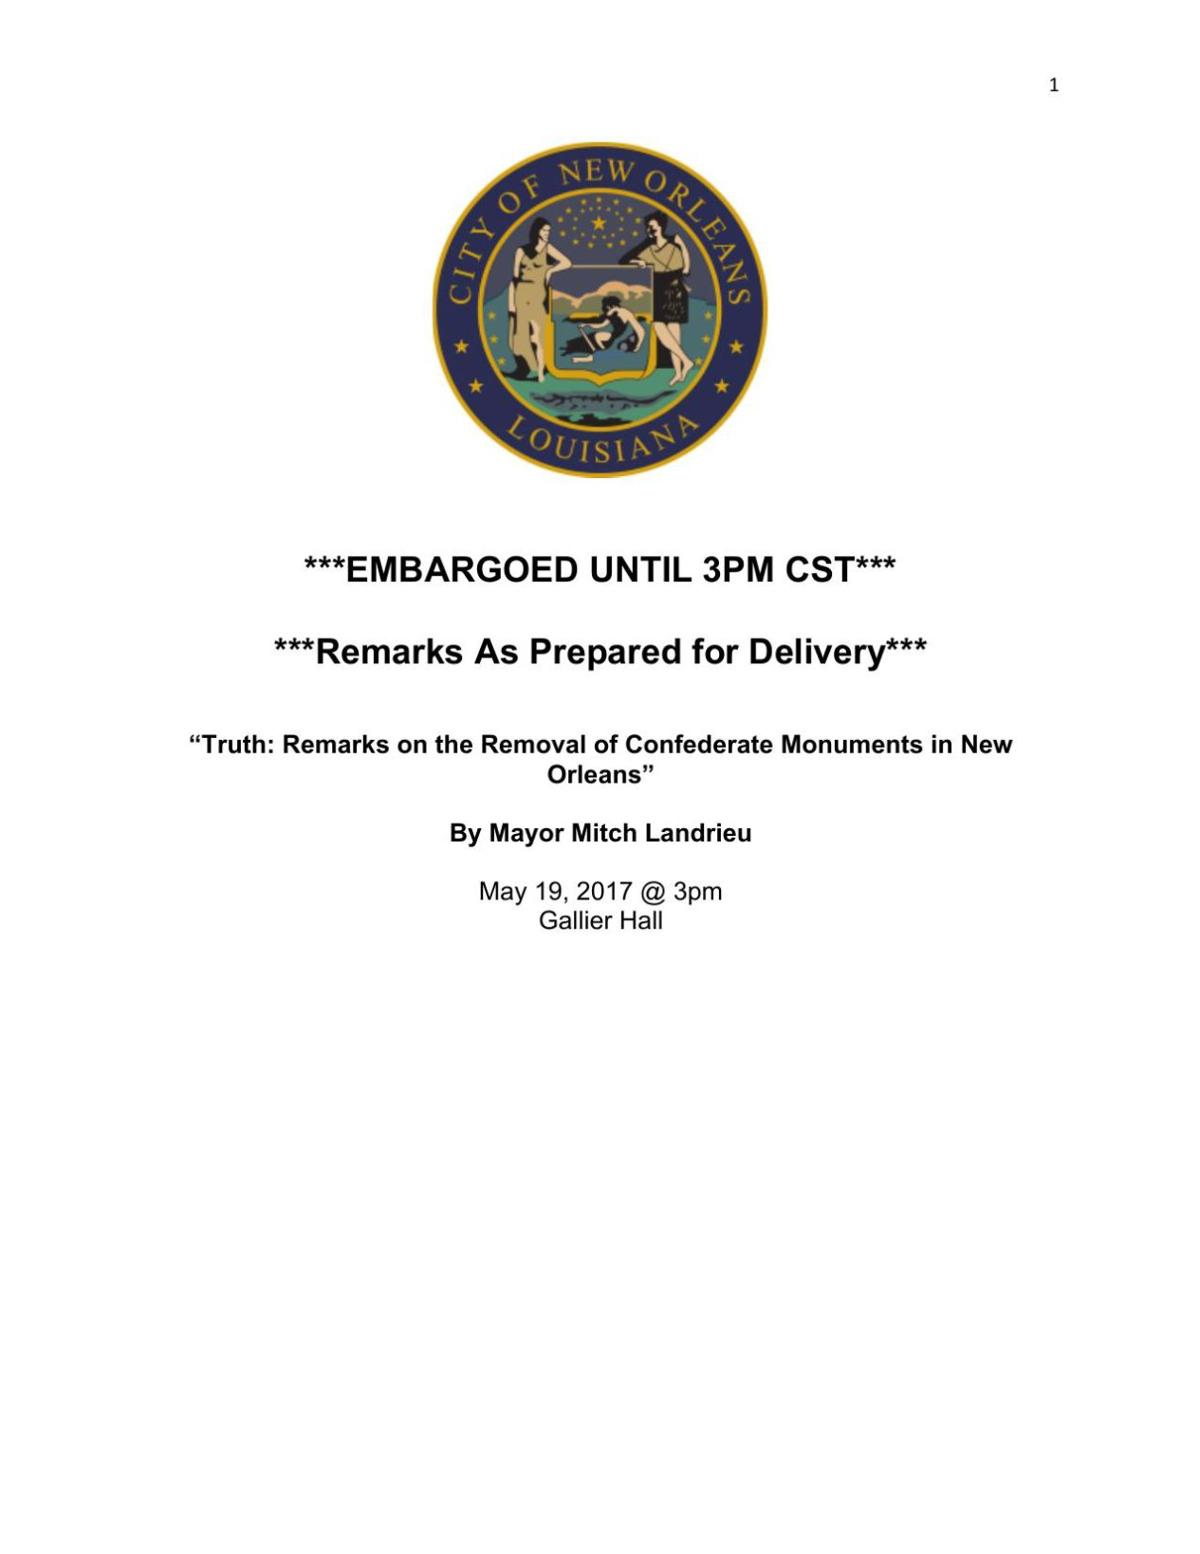 Full text of Mitch Landrieu's Friday speech on monument removals